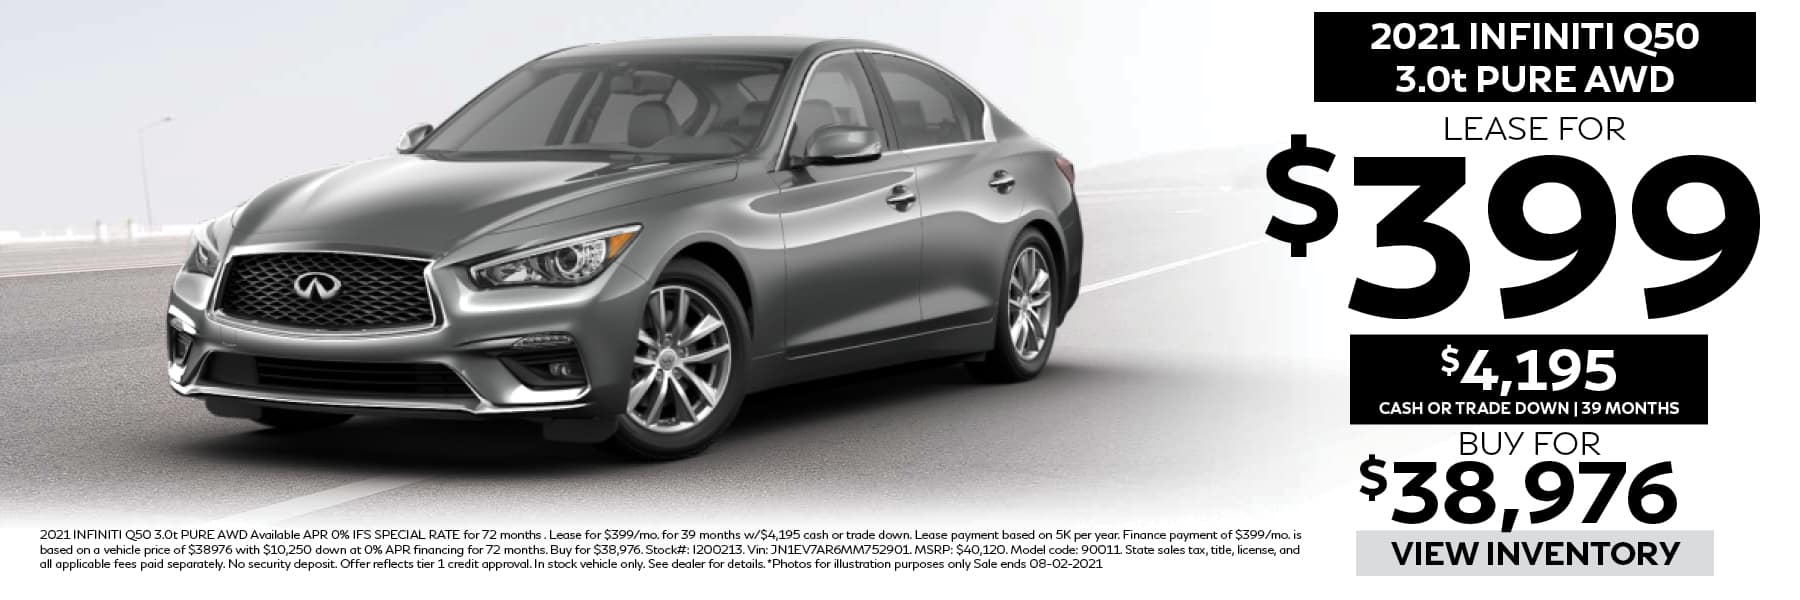 2021 INFINITI Q50 PURE Lease for $399 per Month with $4,195 Cash or Trade Down for 39 Months